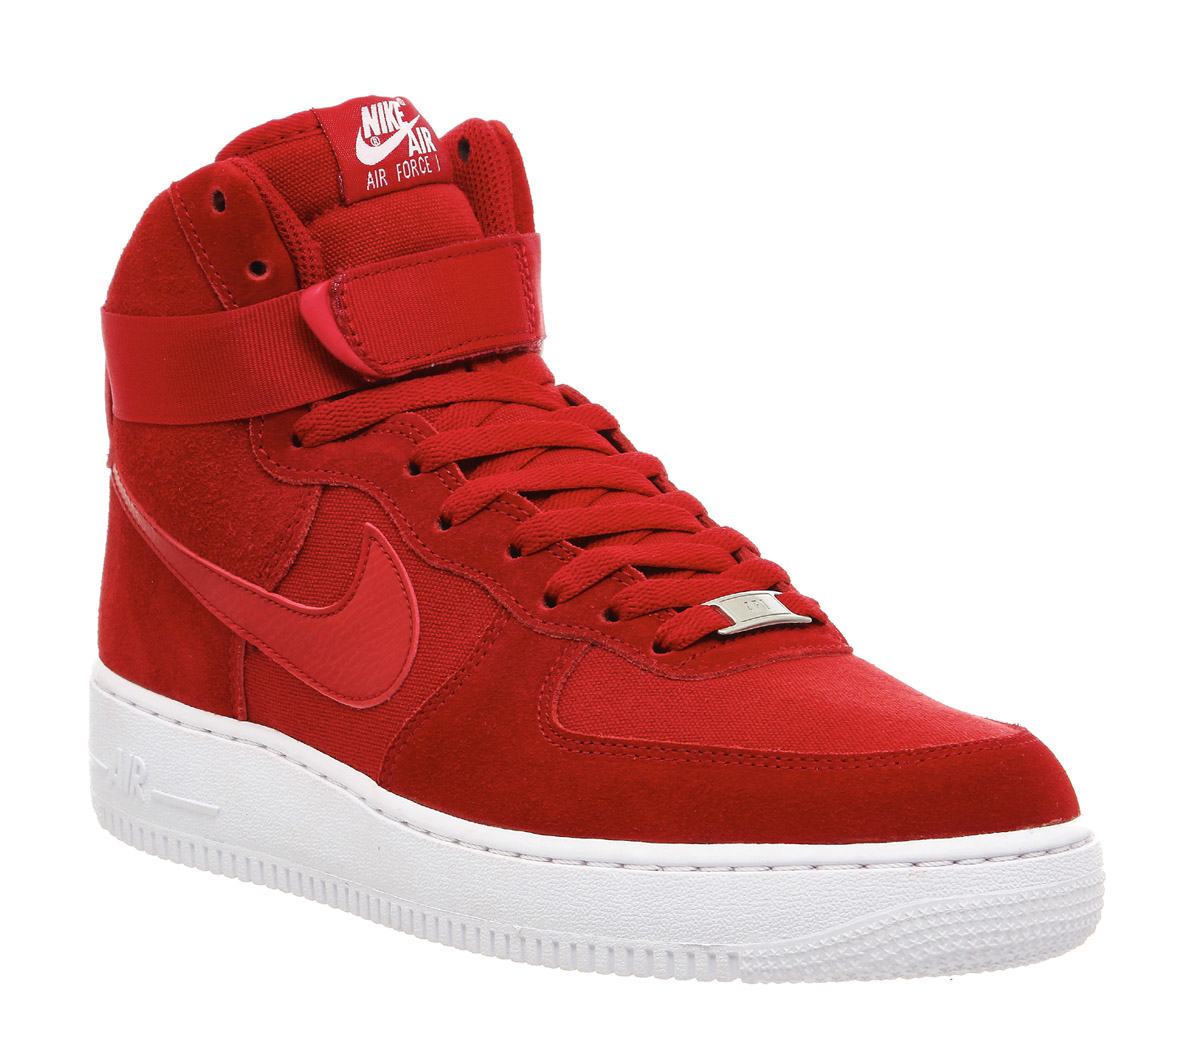 nike air force 1 hi in red lyst. Black Bedroom Furniture Sets. Home Design Ideas